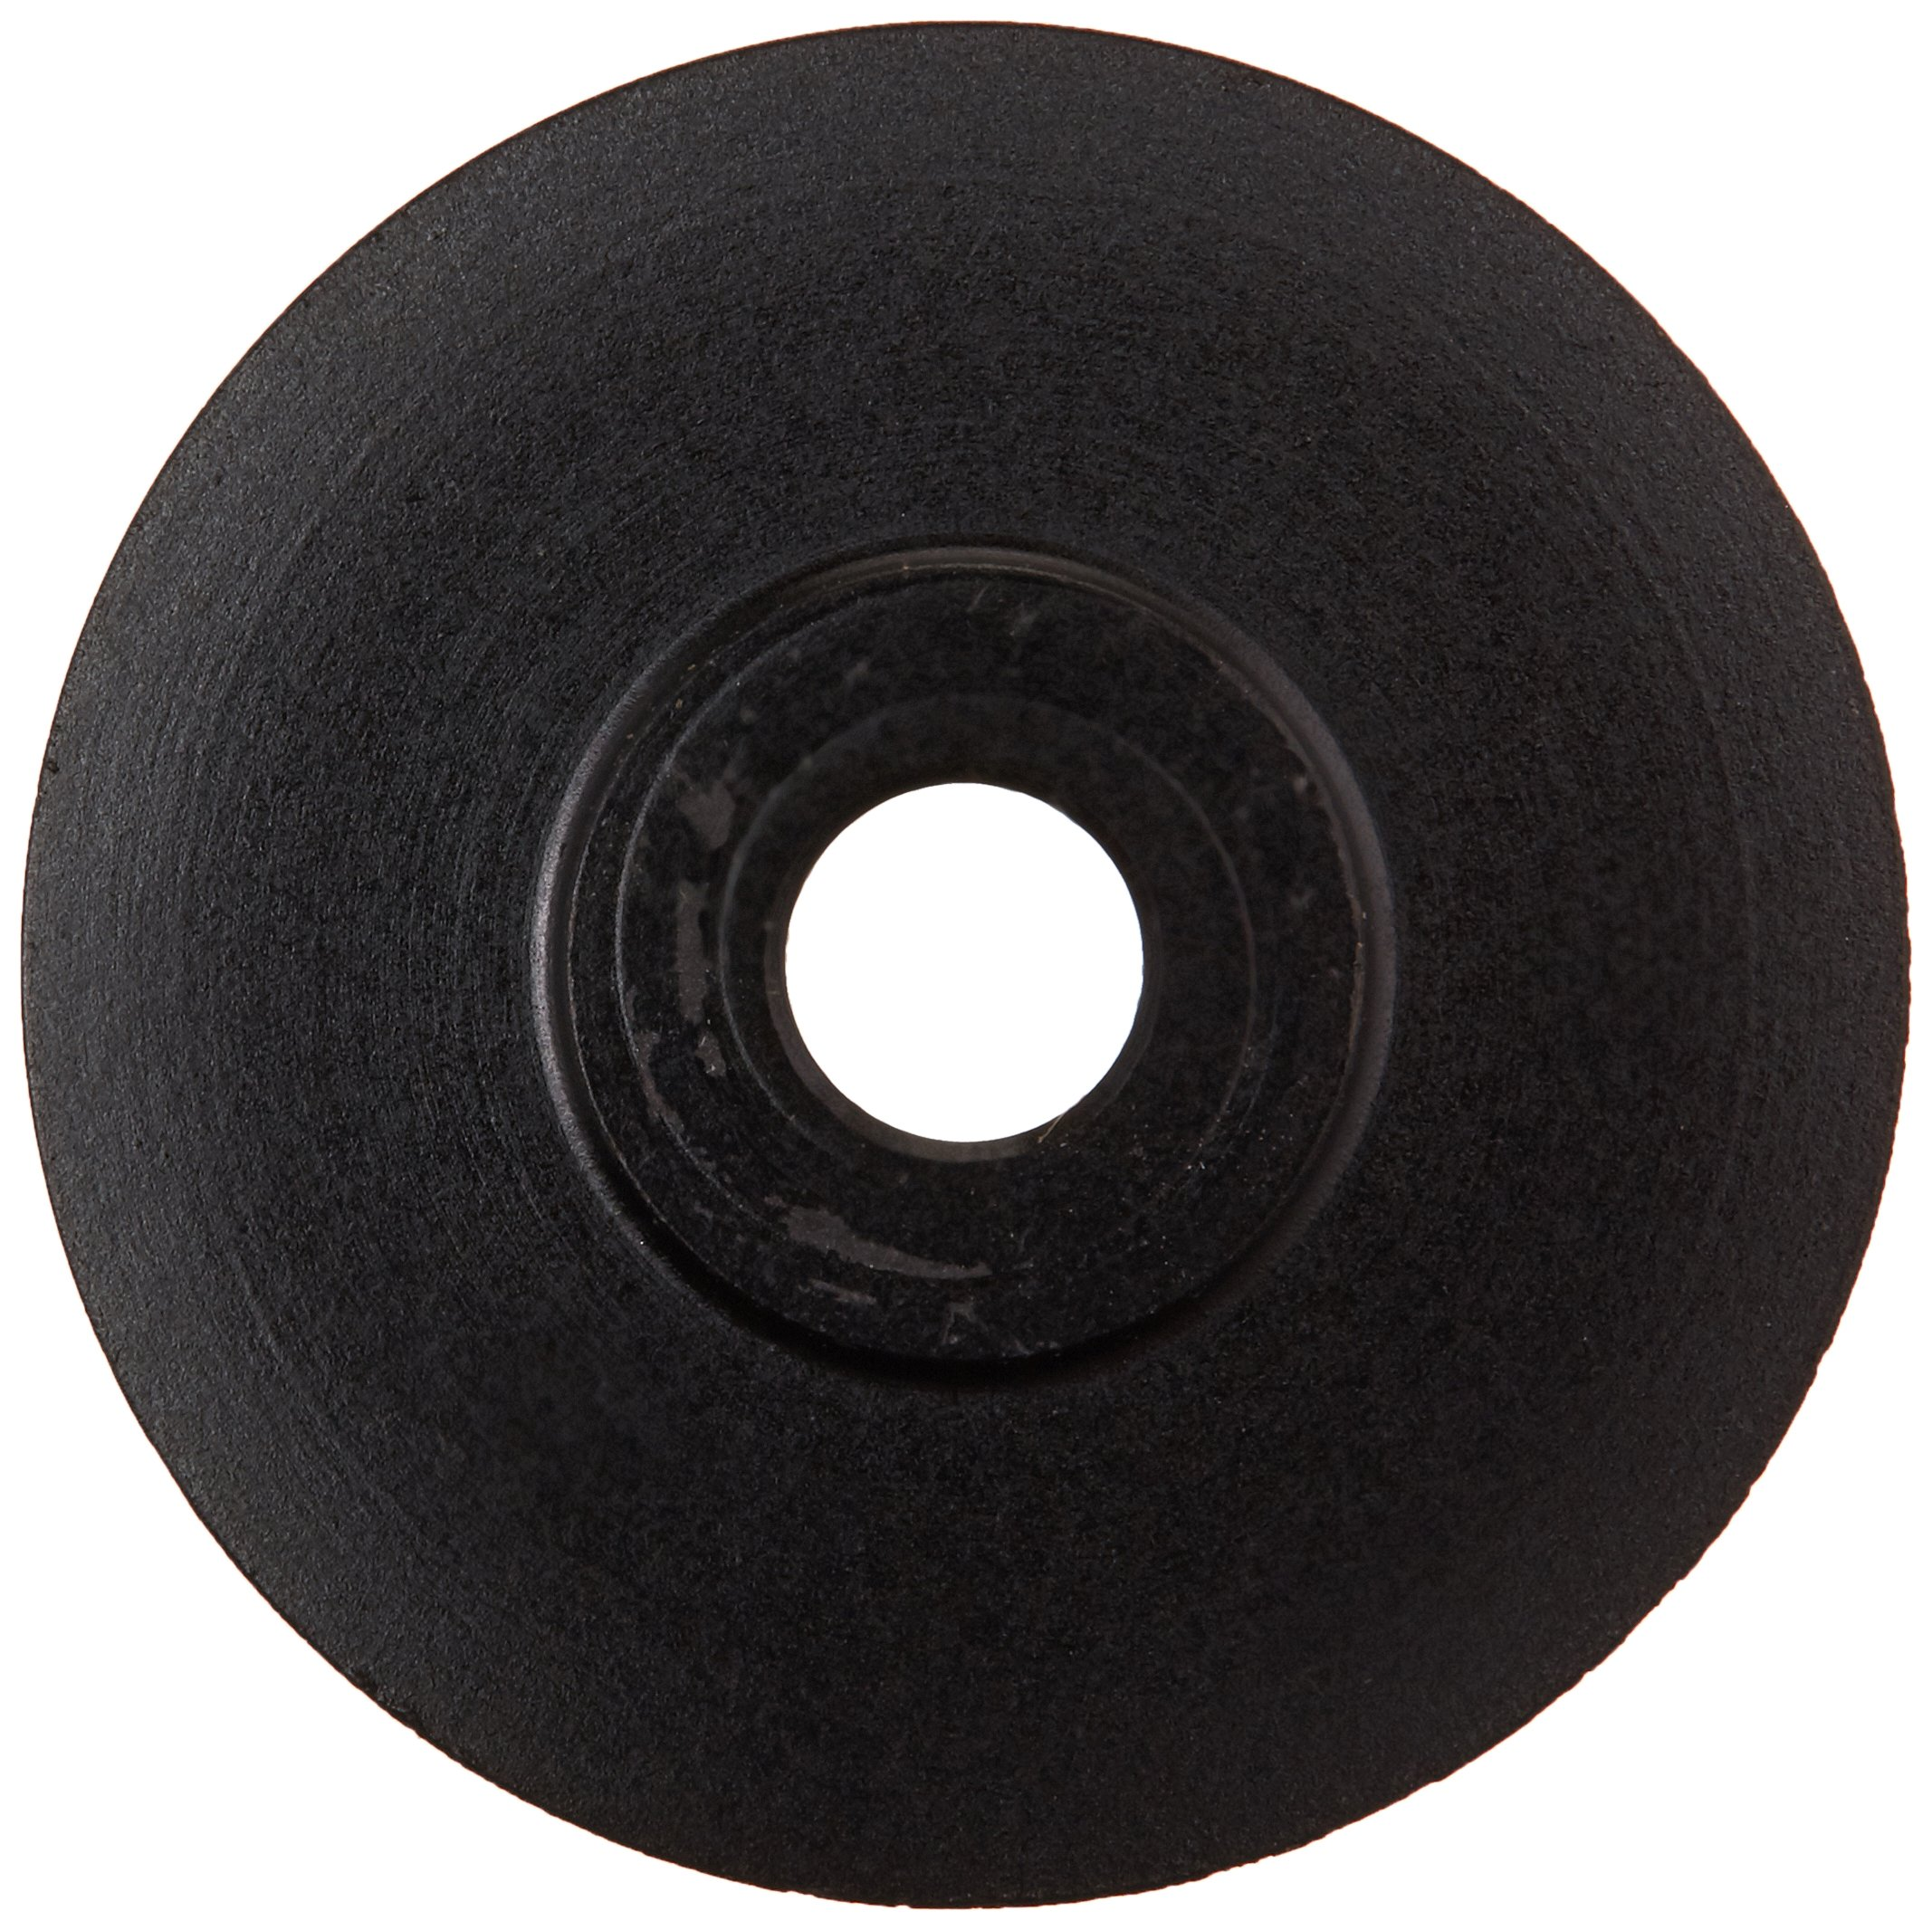 Ridgid 33195 Replacement Wheel for Tubing Cutter